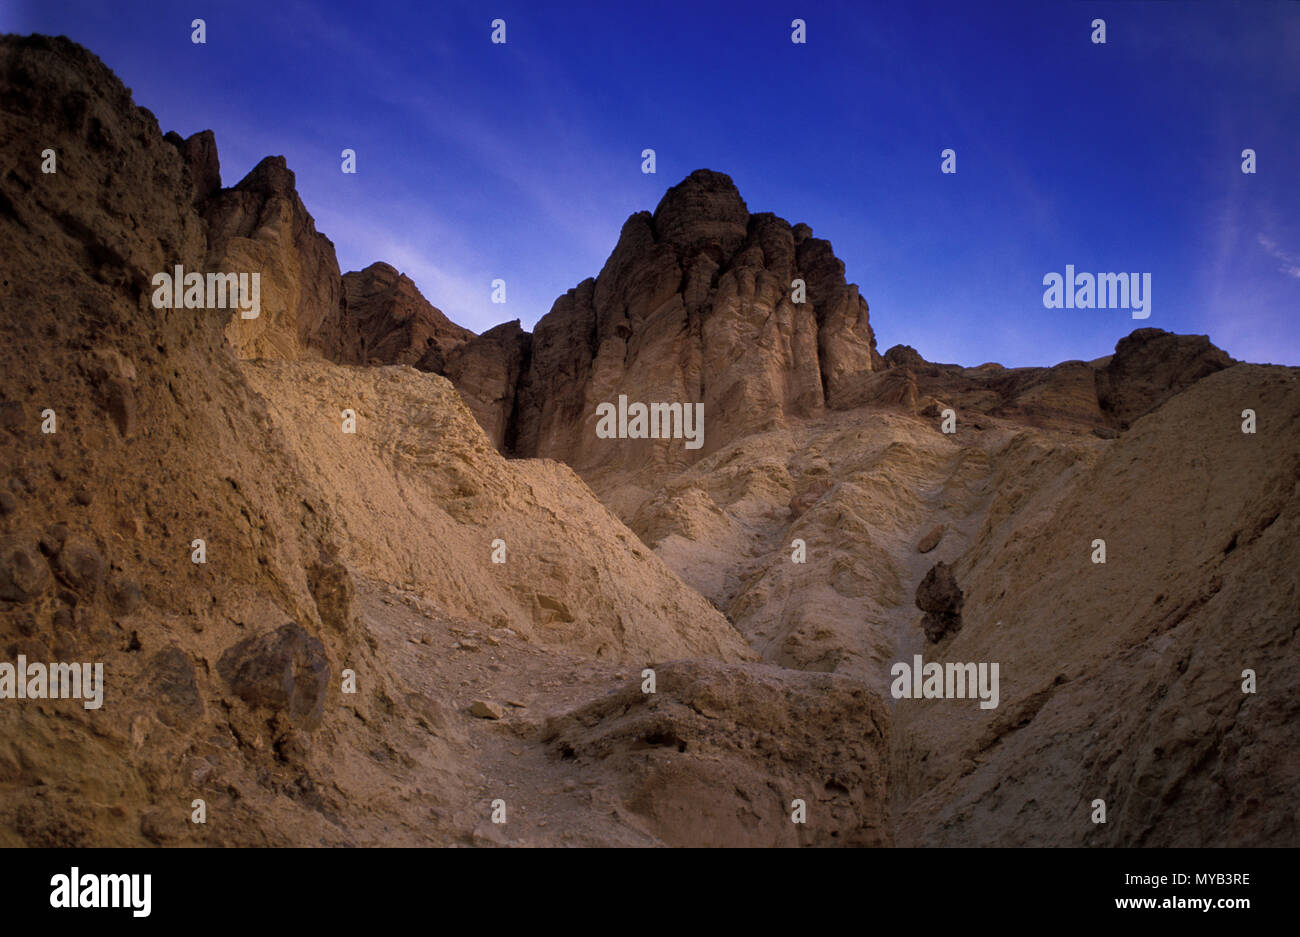 Twilight in Badwater Canyon with dramatic rock formation, Death Valley, CA, USA Stock Photo